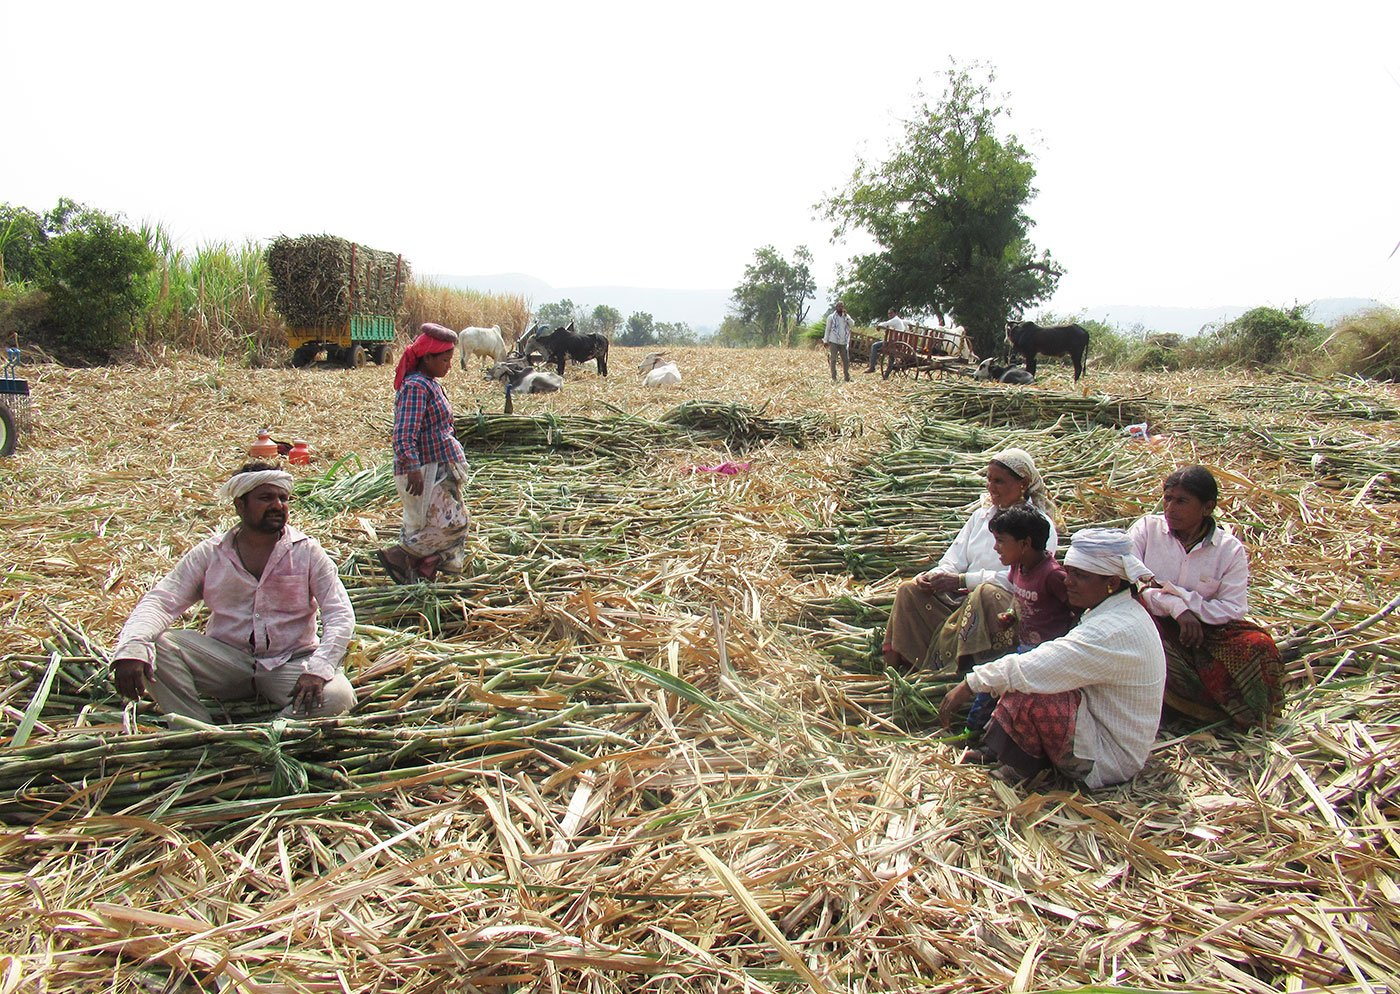 For the lakhs of labourers hired by the sugar factories of western Maharashtra, social distancing is a distant dream. Many in Sangli district are still chopping cane in unhygienic conditions despite the fear of Covid-19